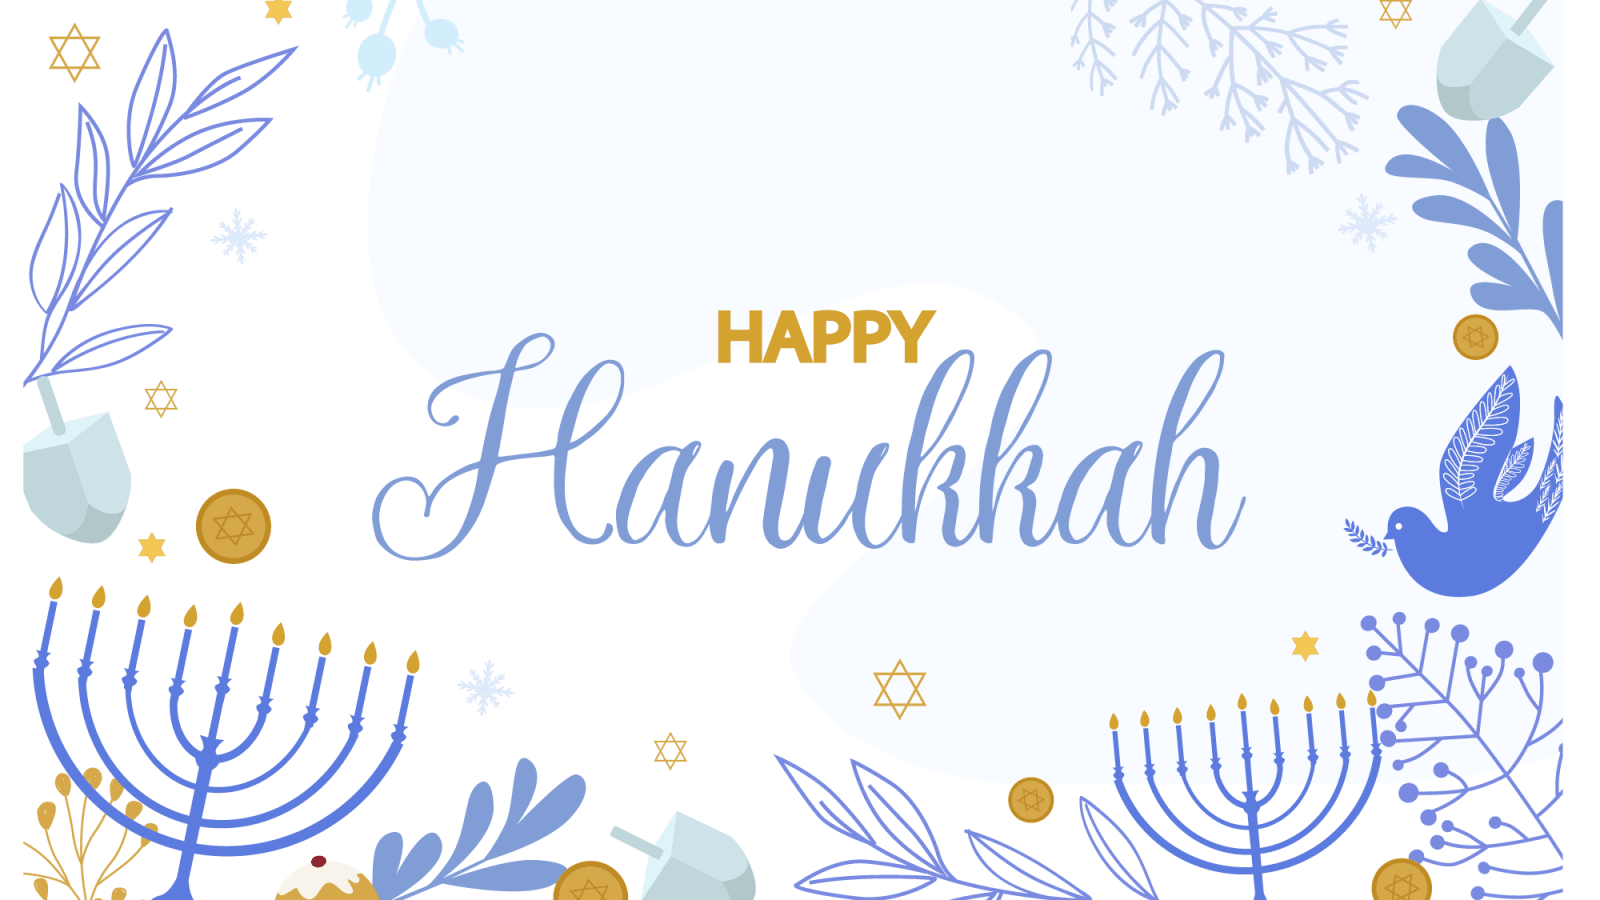 What Is the Difference Between Christmas and Hanukkah?